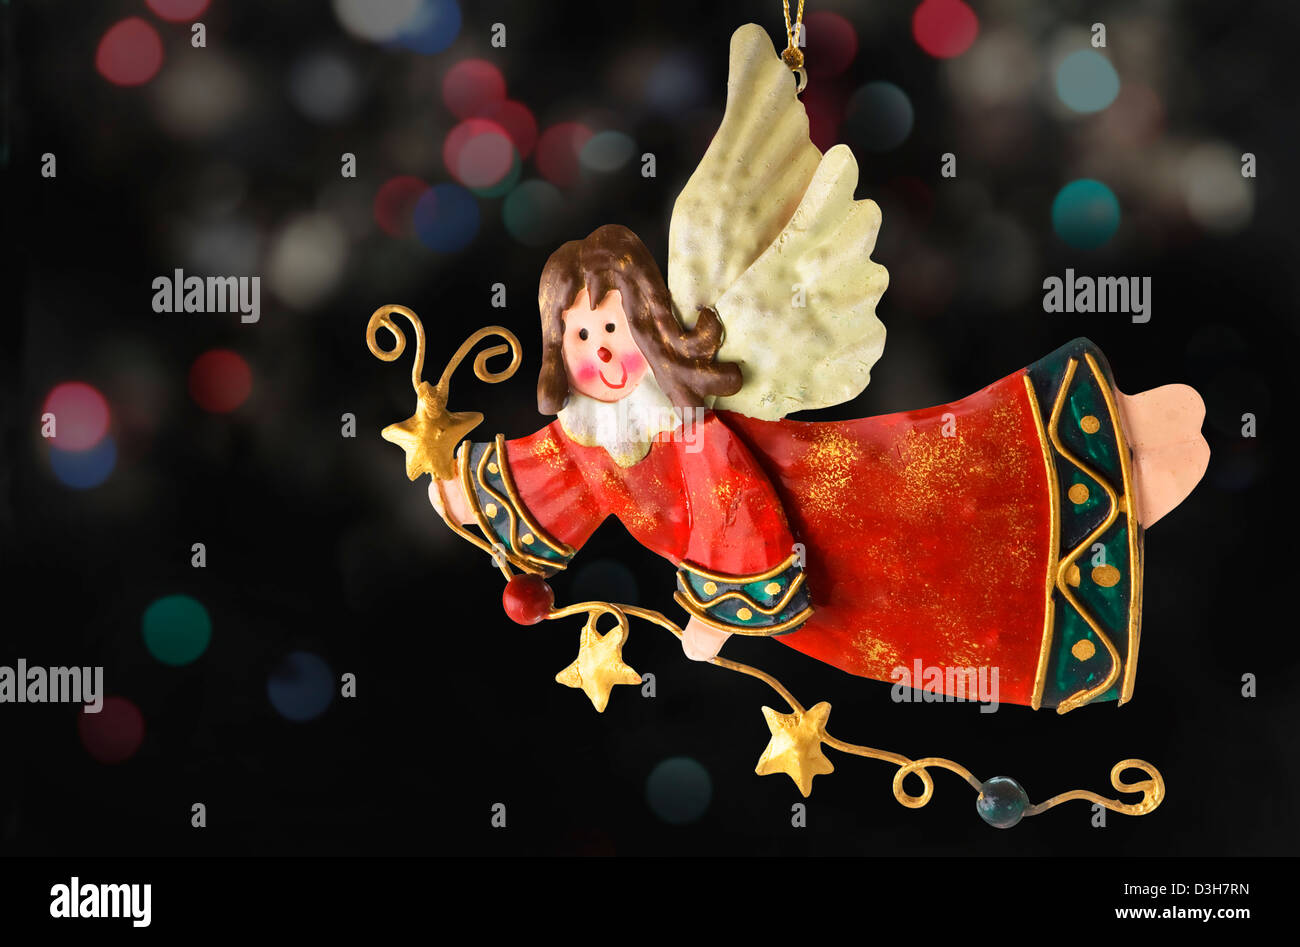 Tinplate Angel, Christmas tree ornaments, with a background of blurry lights - Stock Image